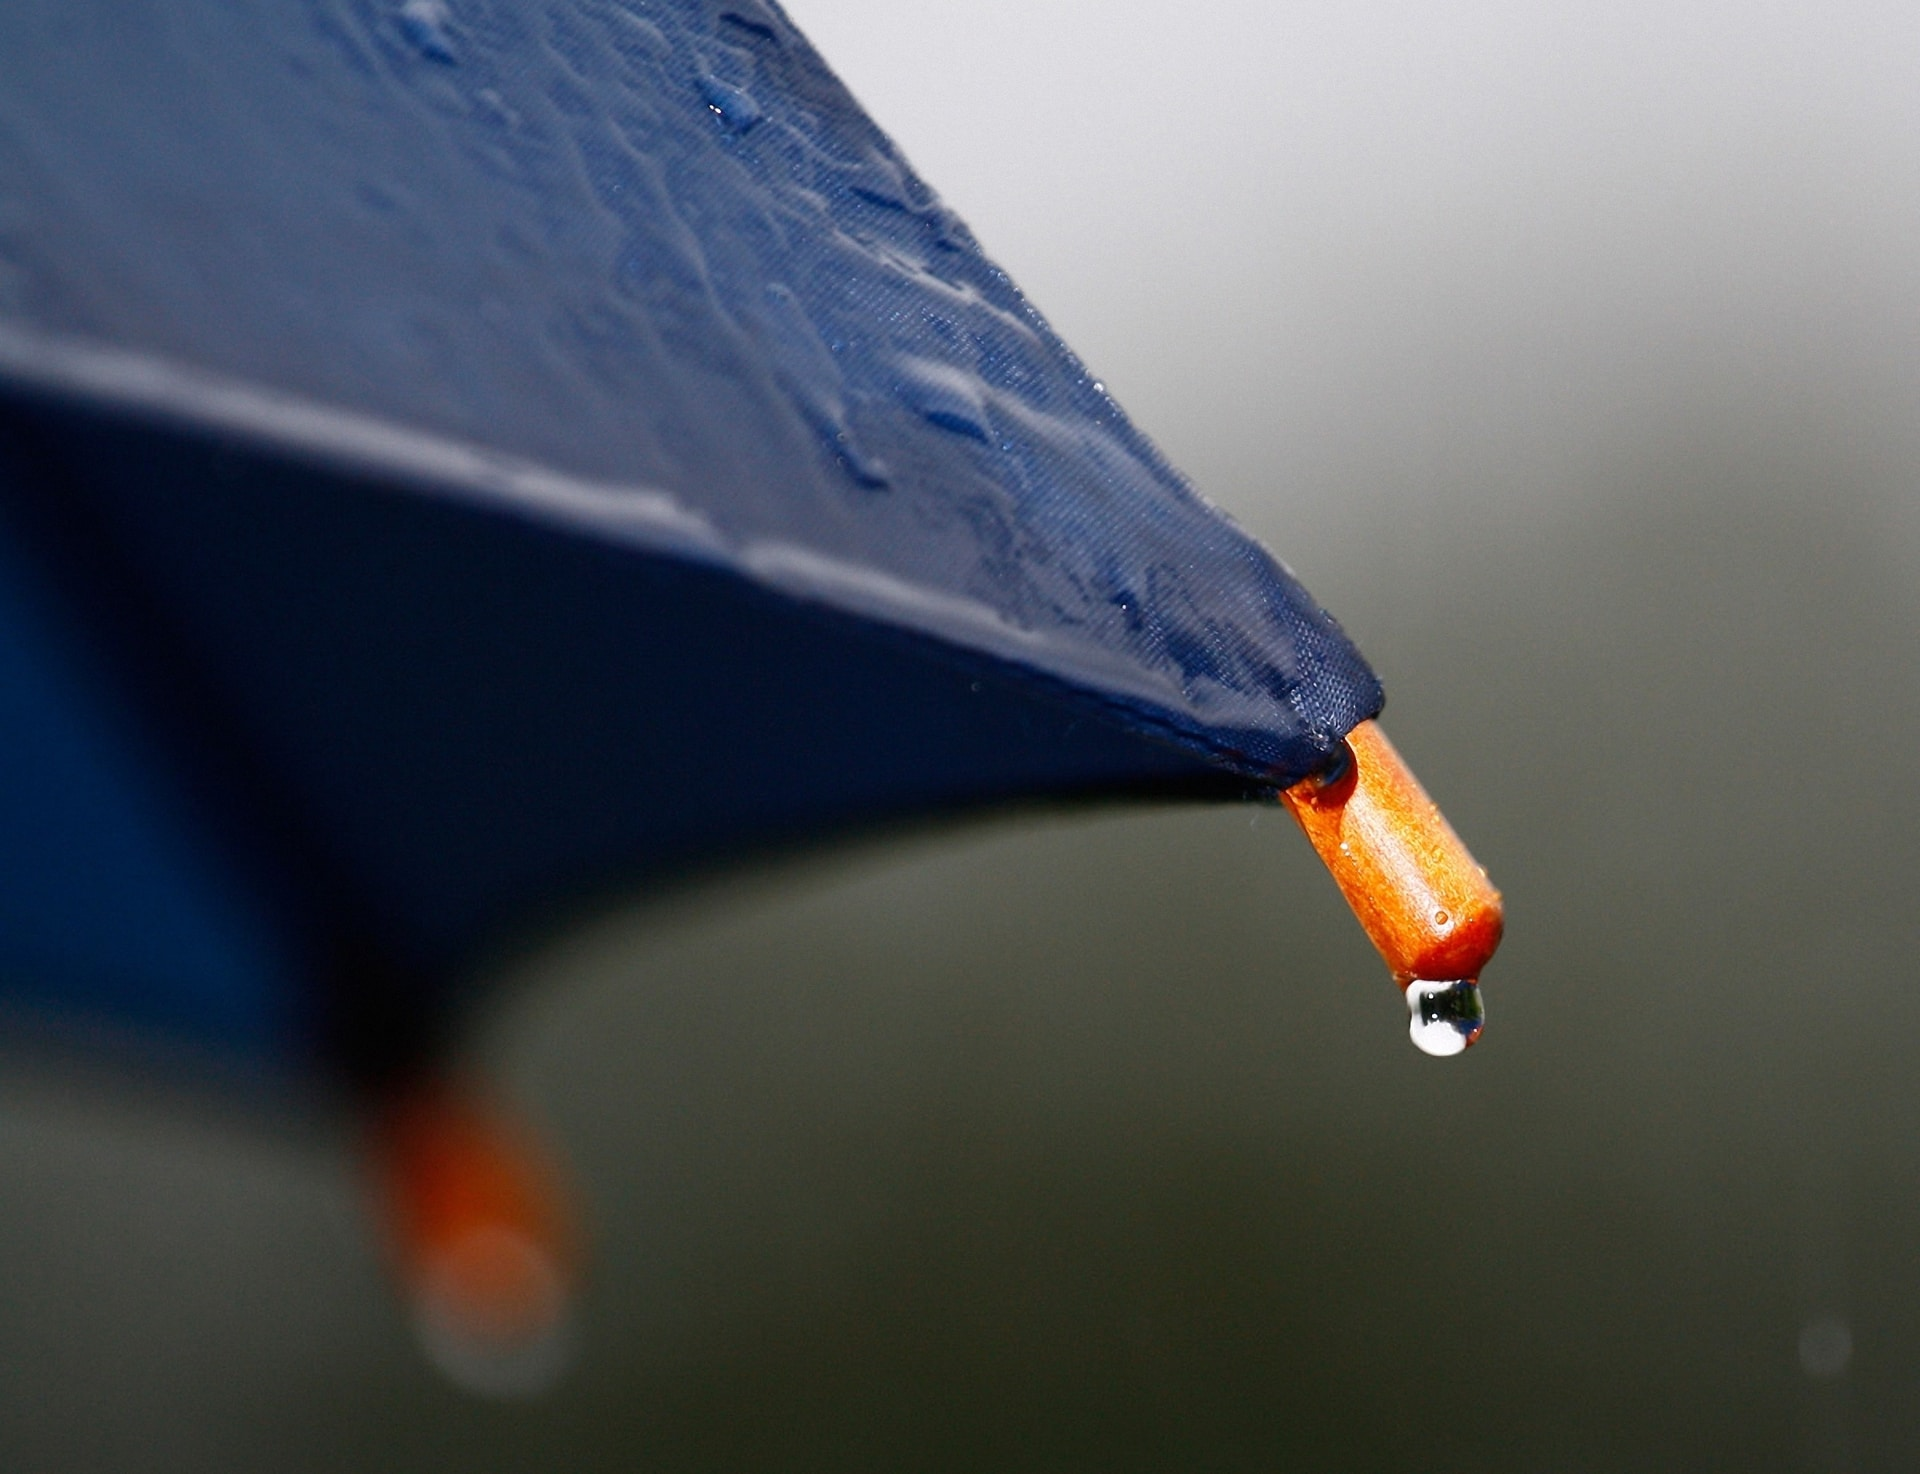 water drop on an umbrella